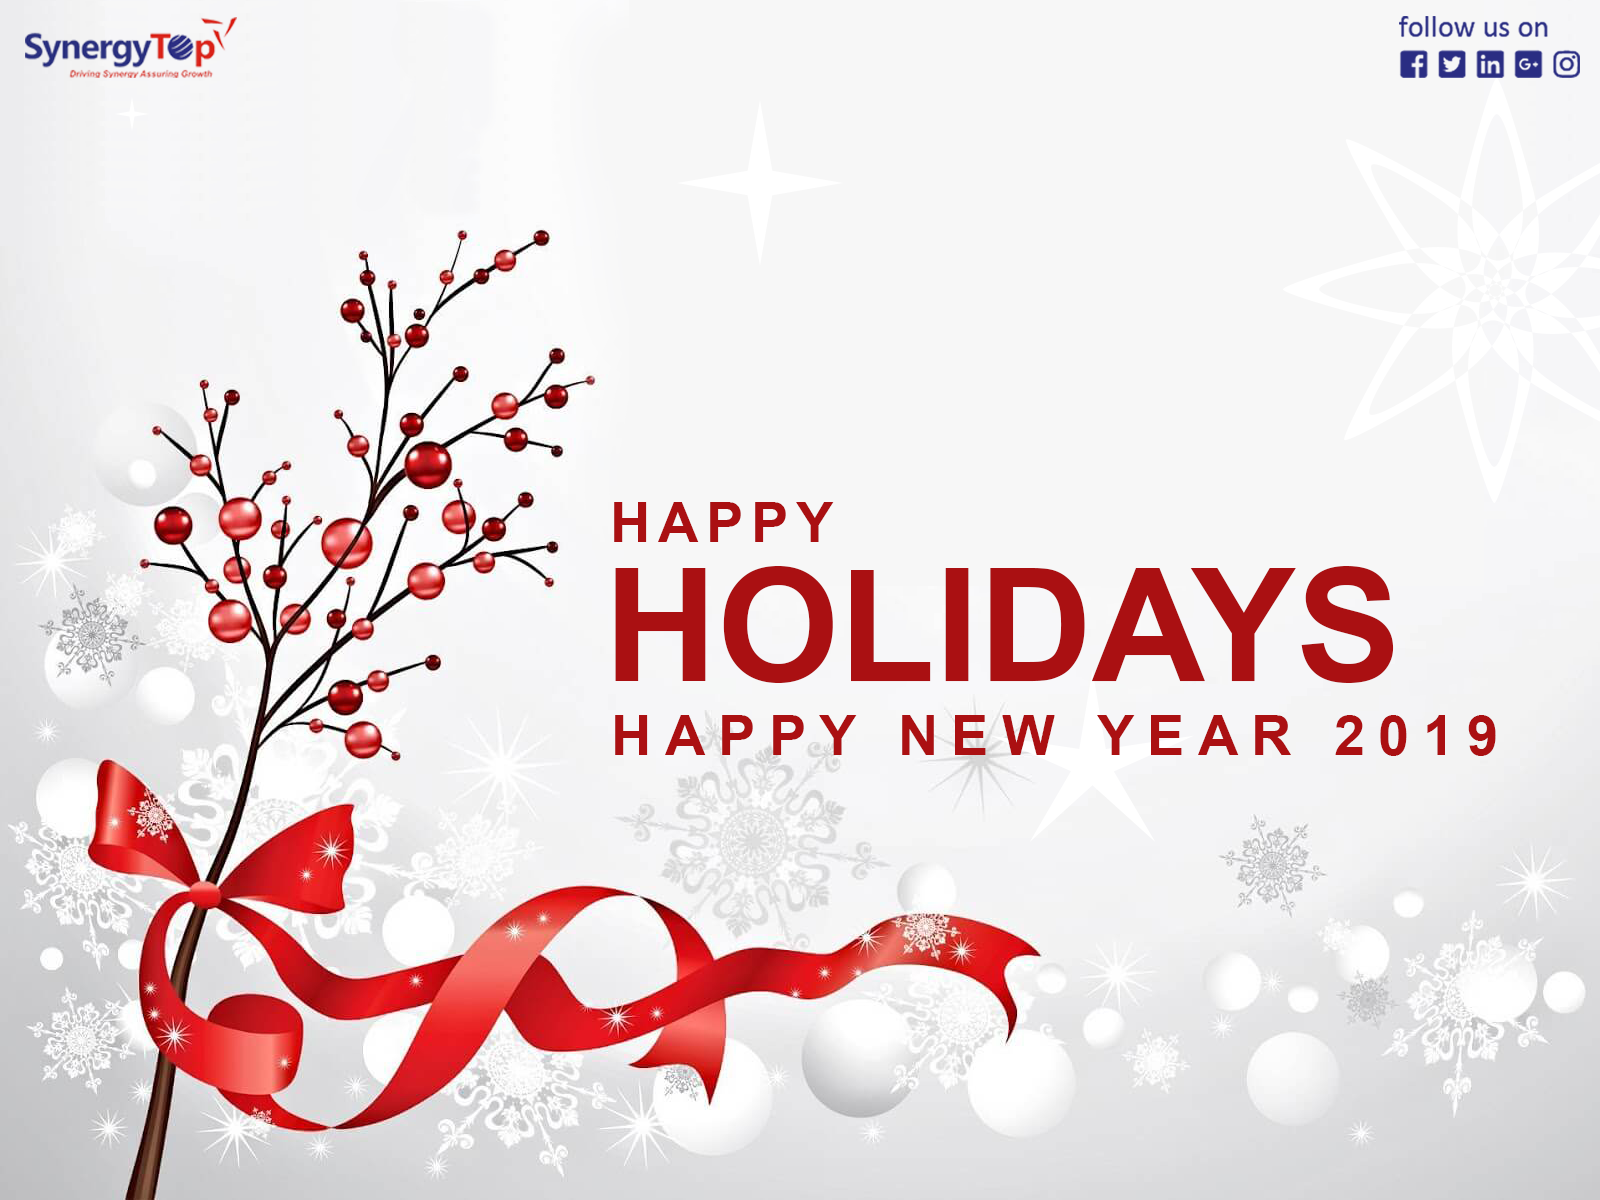 Home Happy new year 2019, solutions, Happy